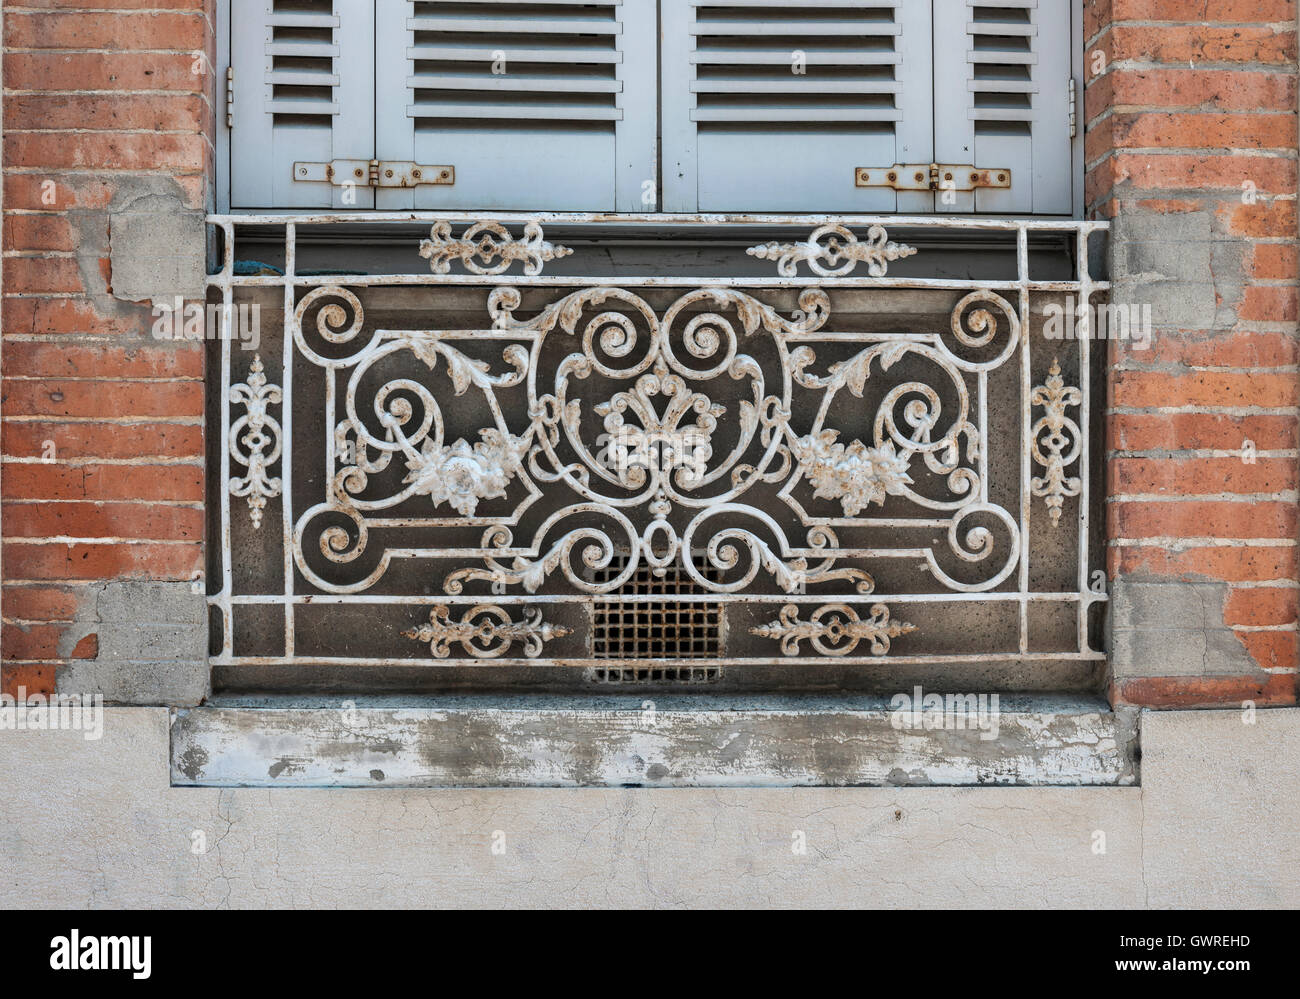 Window With Blue Shutters And Ornate Wrought Iron Window Box Or Balcony On  Old Brick Building In Toulouse, France